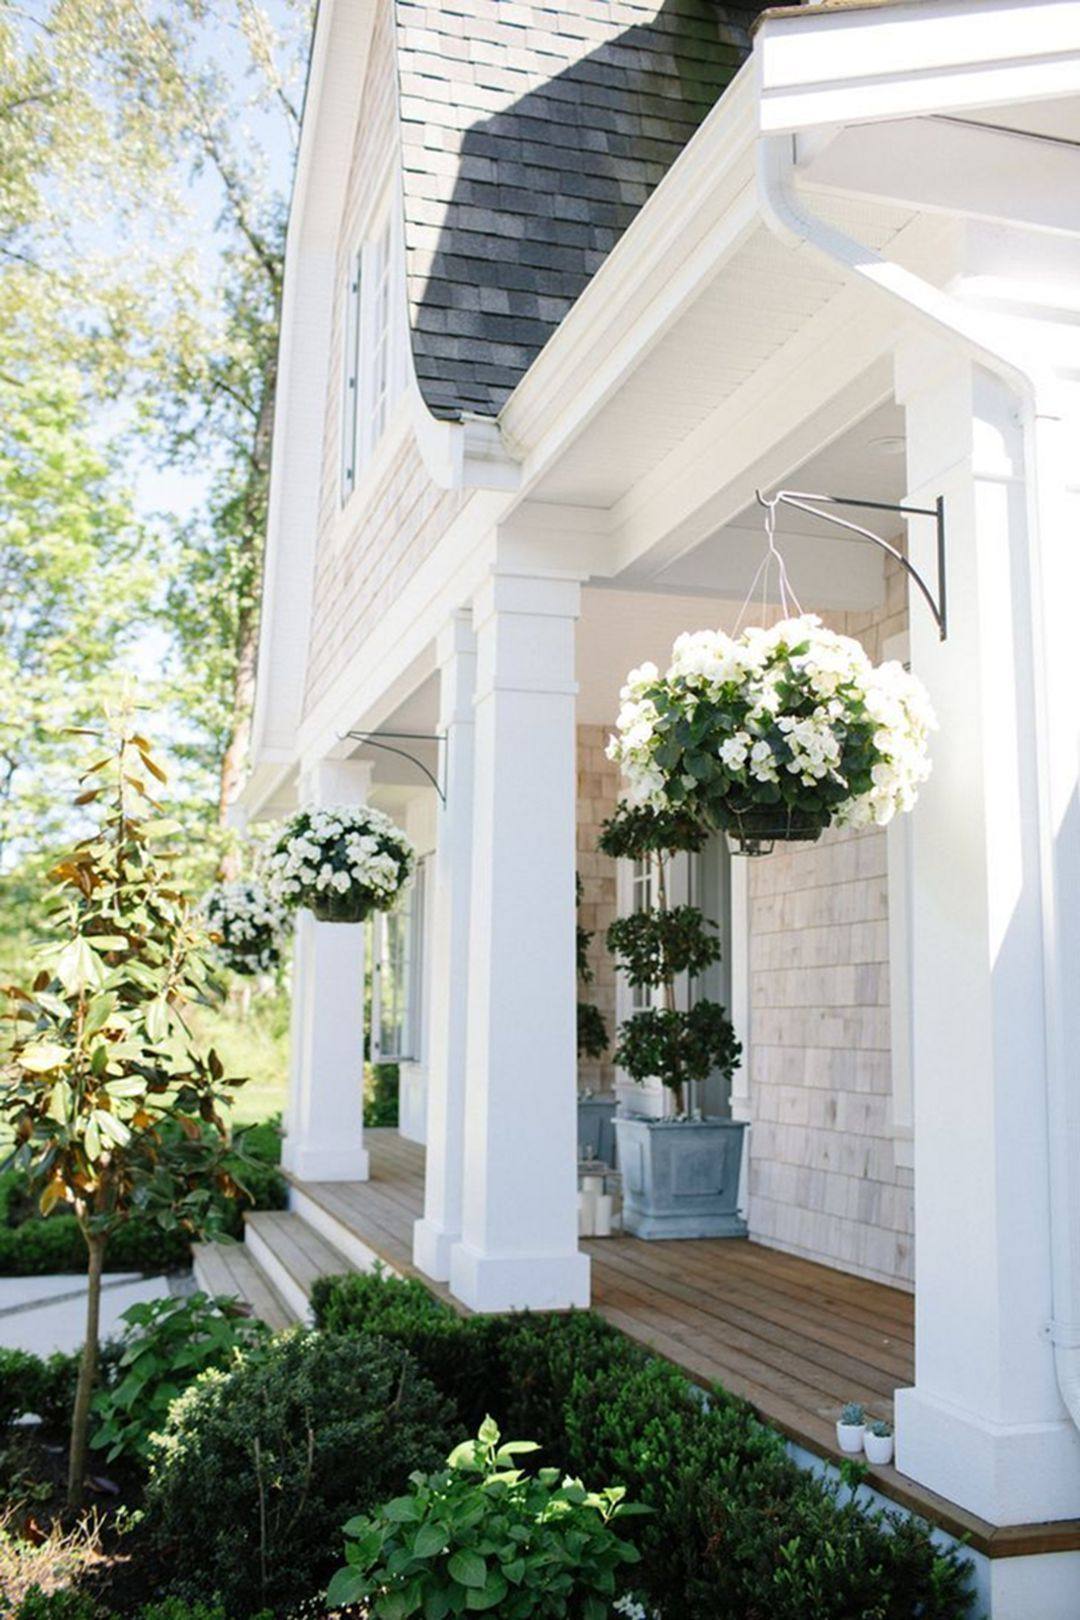 30 Best And Beautiful Home Front Porch Decorating Ideas Decor Gardening Ideas In 2020 Modern Farmhouse Exterior Farmhouse Exterior House Exterior